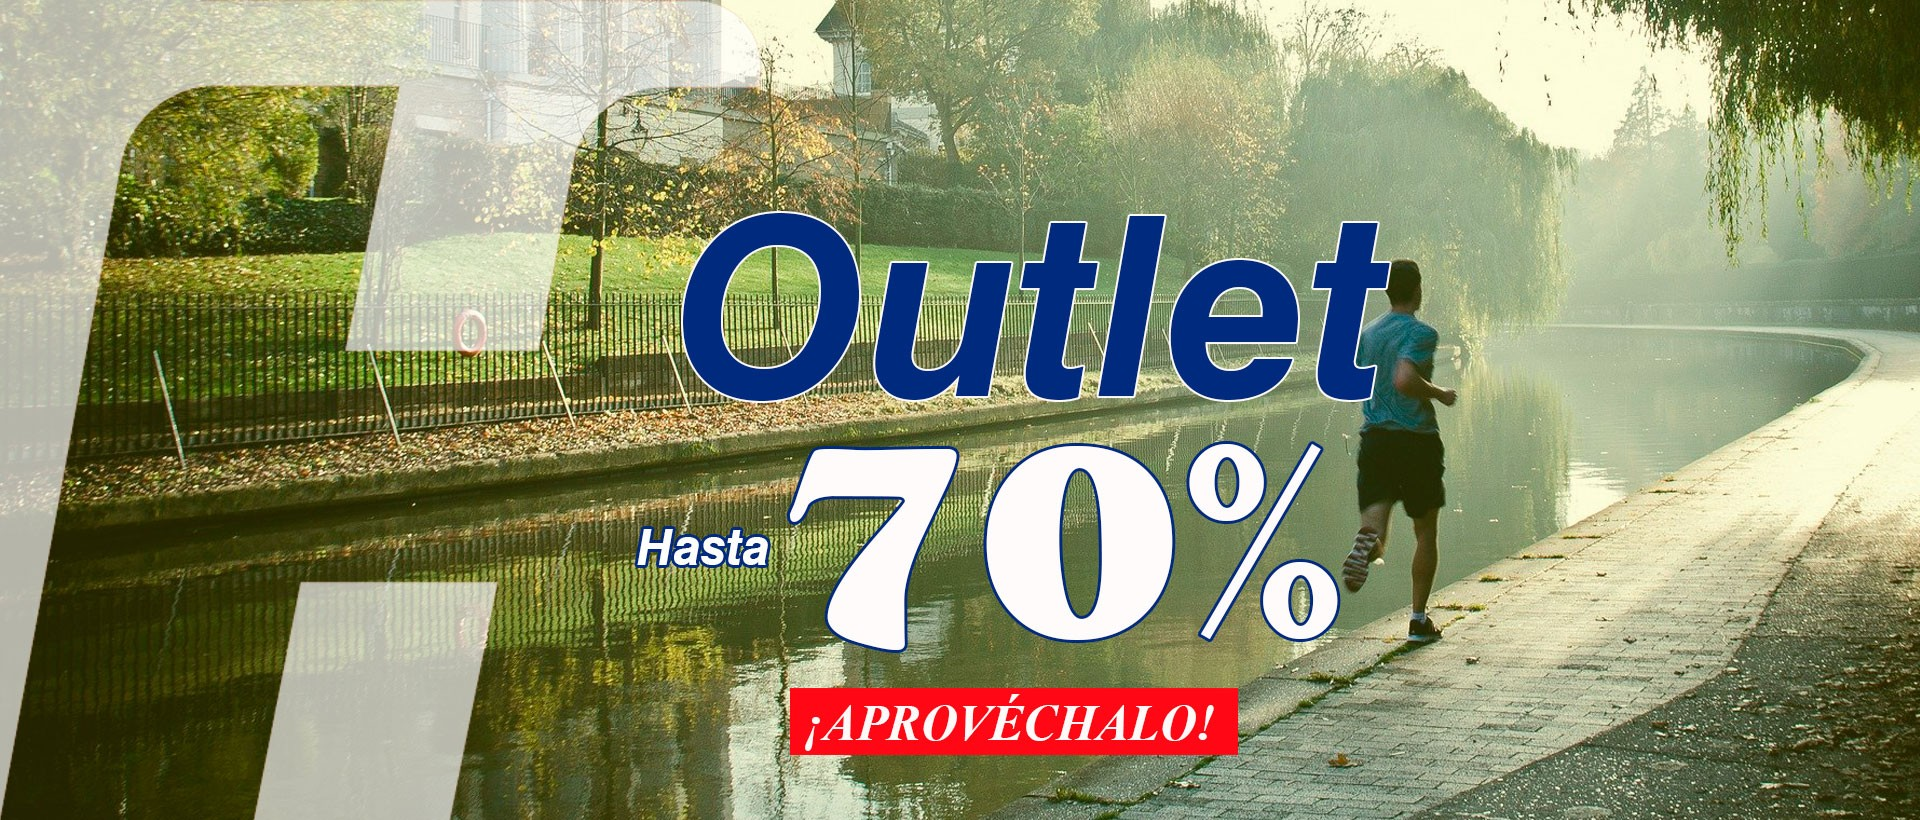 zapatillas outlet